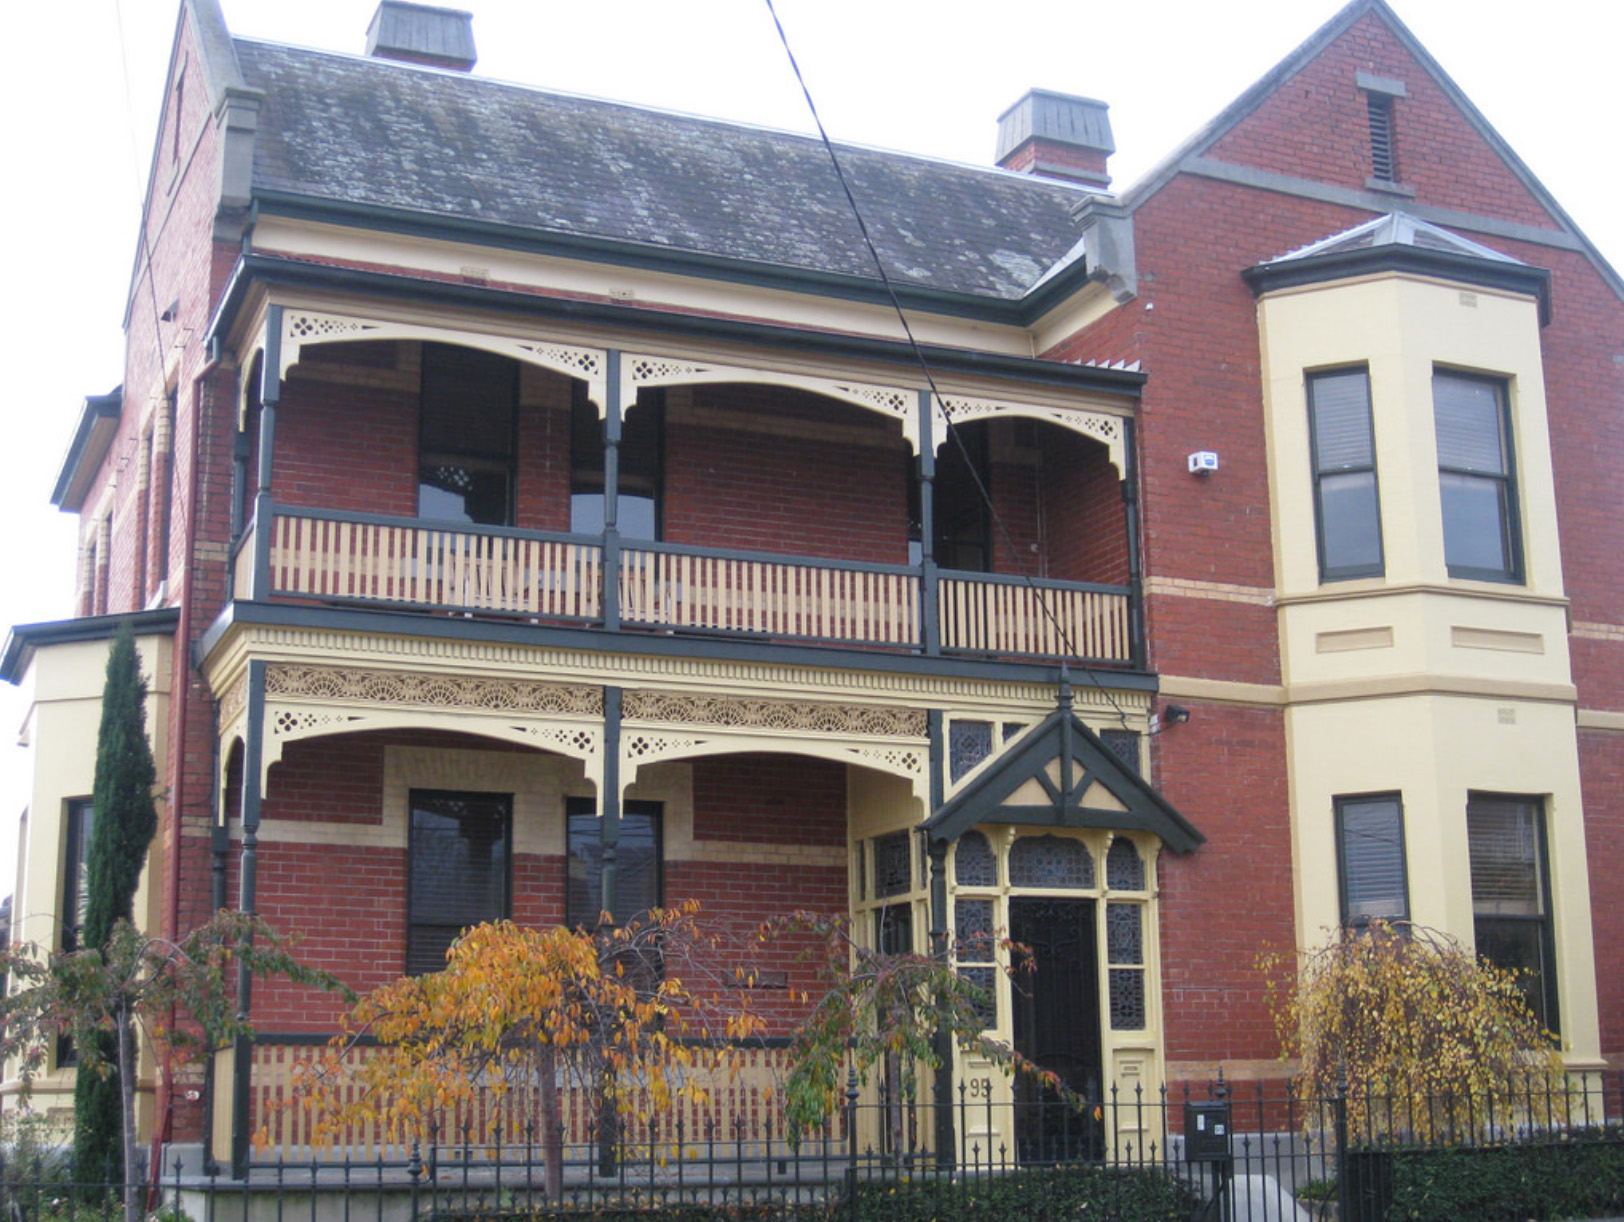 westbourne late victorian house ruckers hill westgarth copy.jpg